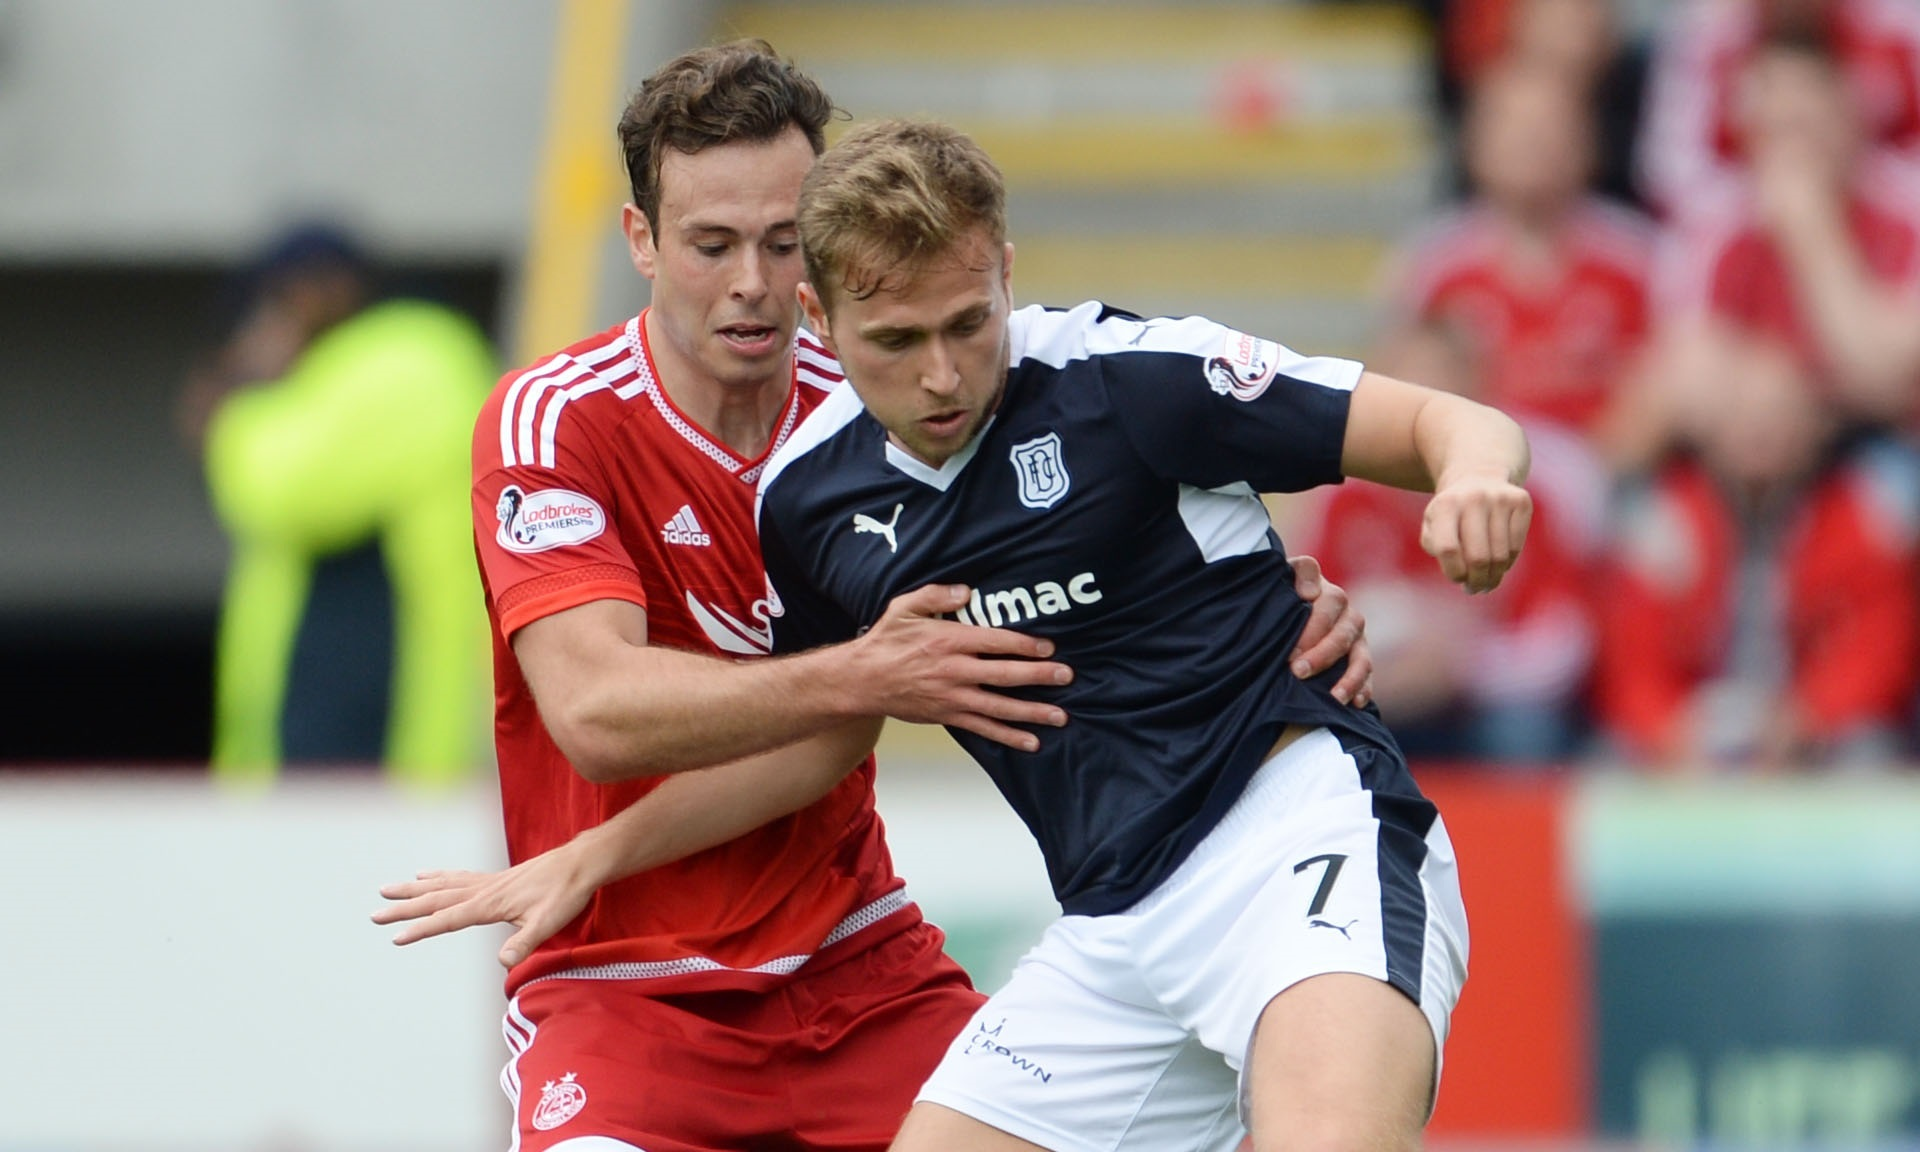 Aberdeen's Andrew Considine battles with Greg Stewart. The pair could soon be teammates...